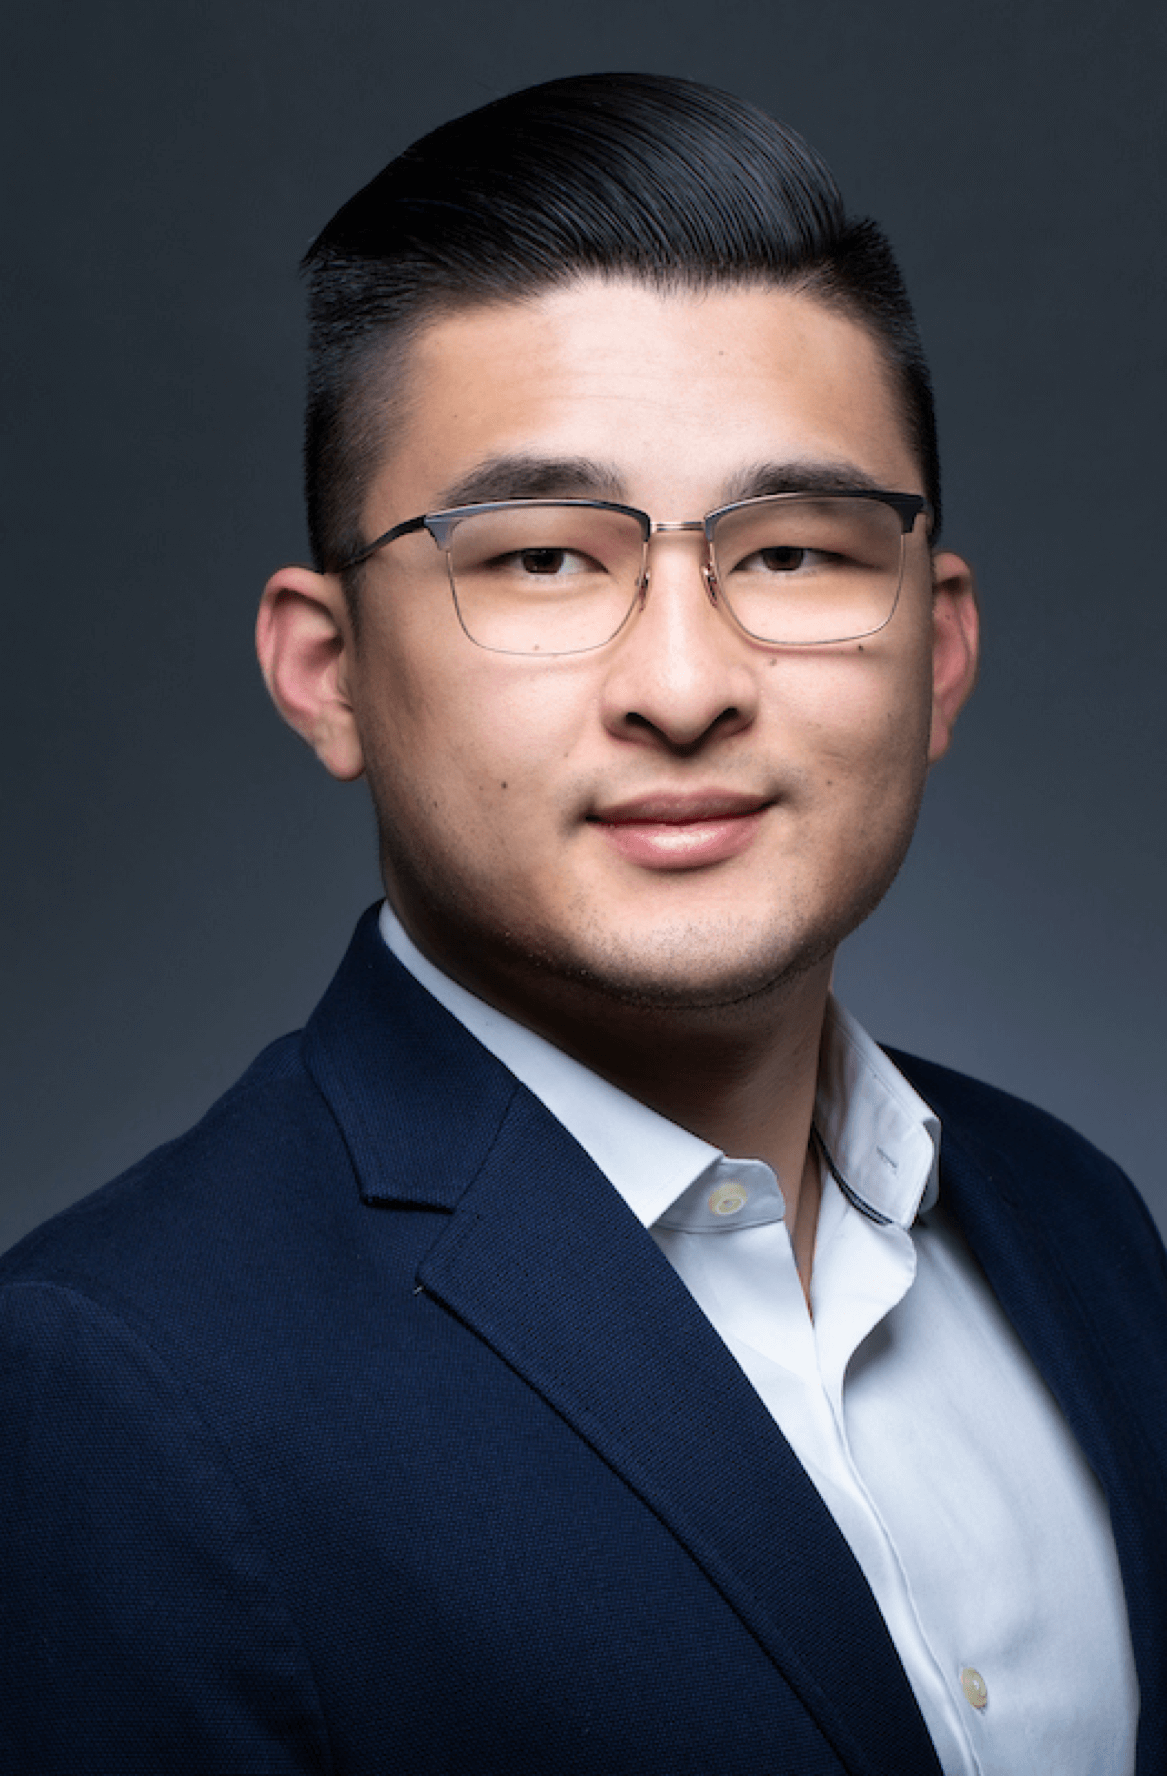 Headshot of Michael Zheng, Head of finance at Affinity